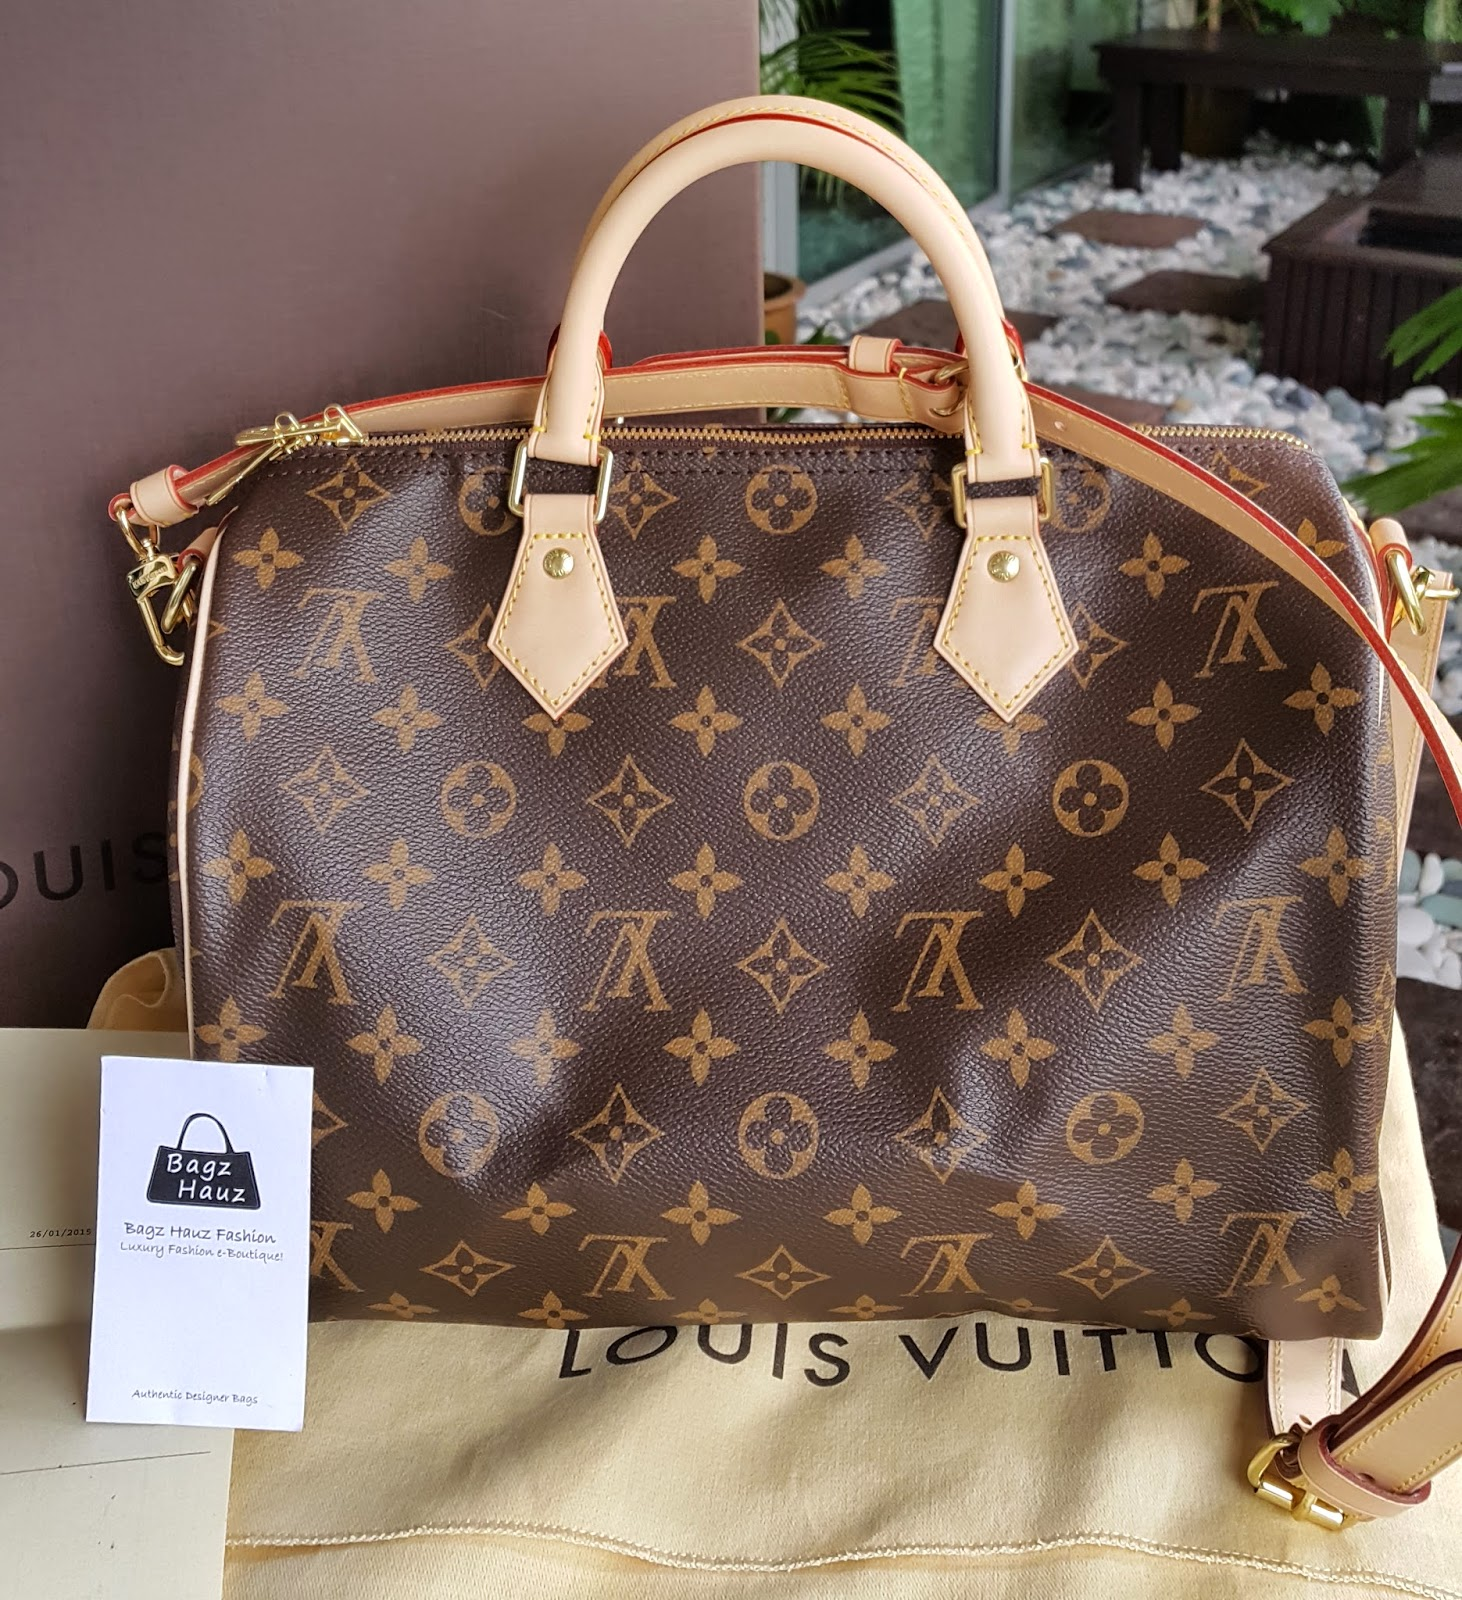 d1f87d57d0b1 LOUIS VUITTON Speedy 30 Bandouliere in Monogram Canvas (opting for 3x  installment payment plan too) ~ For Suzie (Brunei) ~ ♥♥1st time customer♥♥